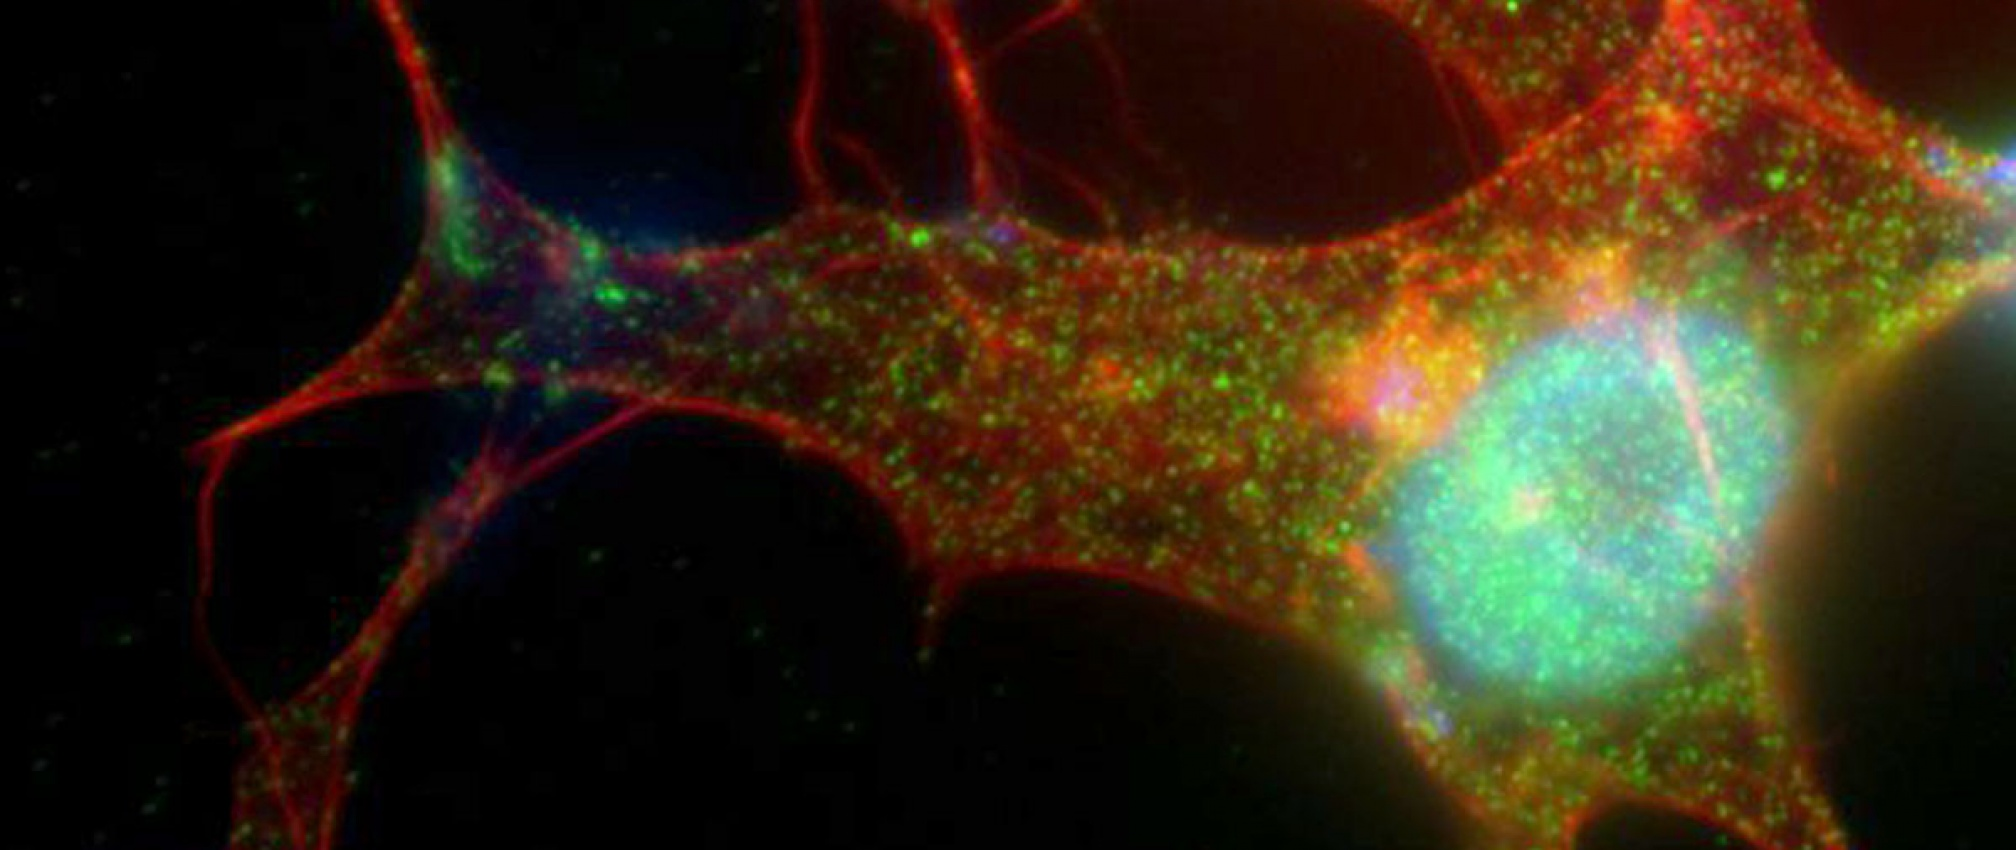 Retinal pigmented epithelial (RPE) cells are highly responsive to Wnt ligand stimulation. Intense beta catenin (green) localization in the nucleus (blue) is observed upon treatment with Wnt3A. Actin is labeled in red.